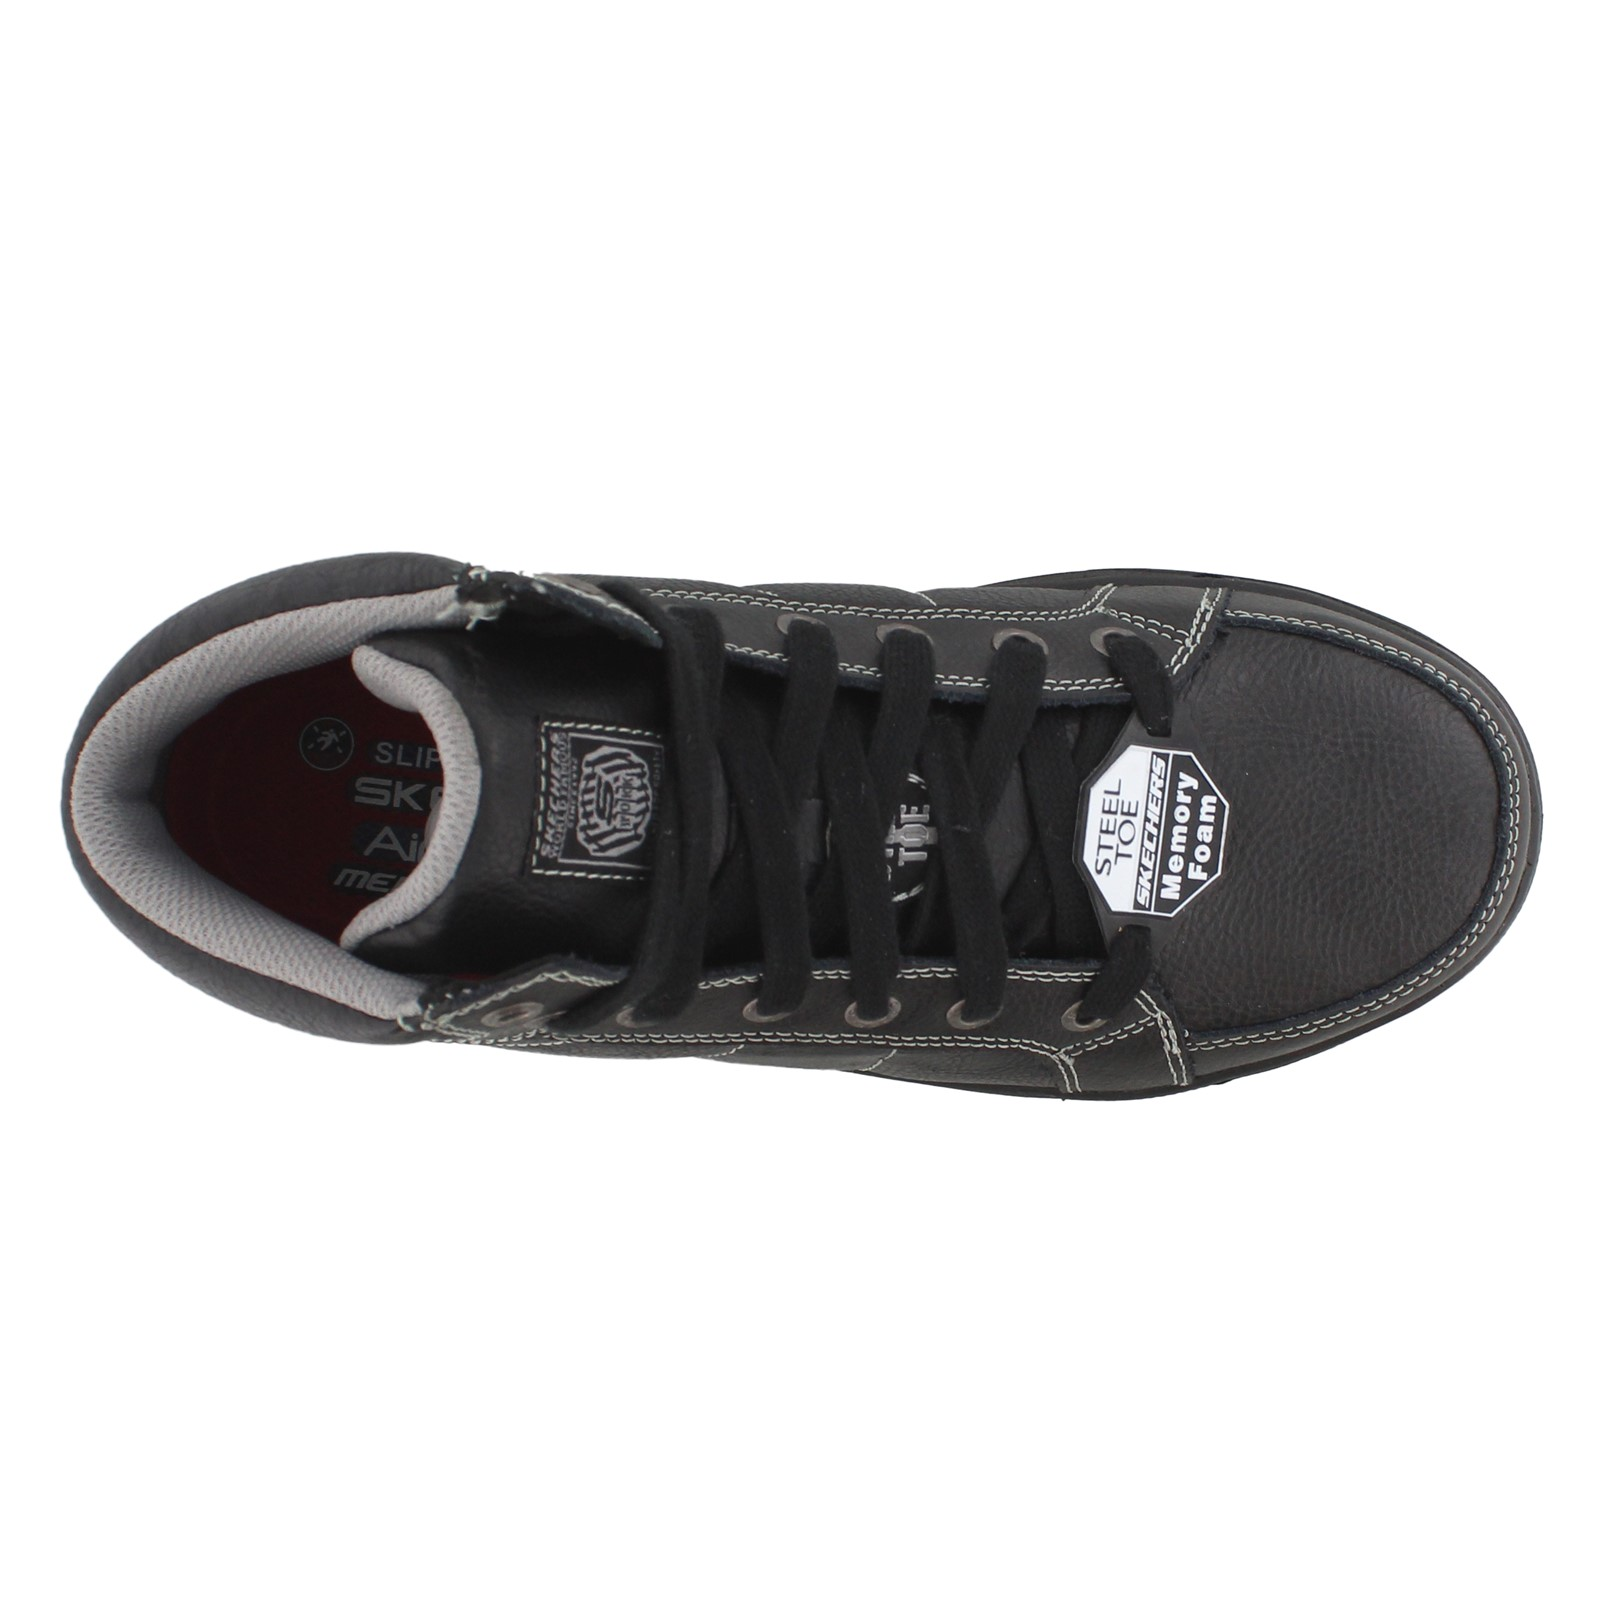 656622843eba Next. add to favorites. Men s Skechers